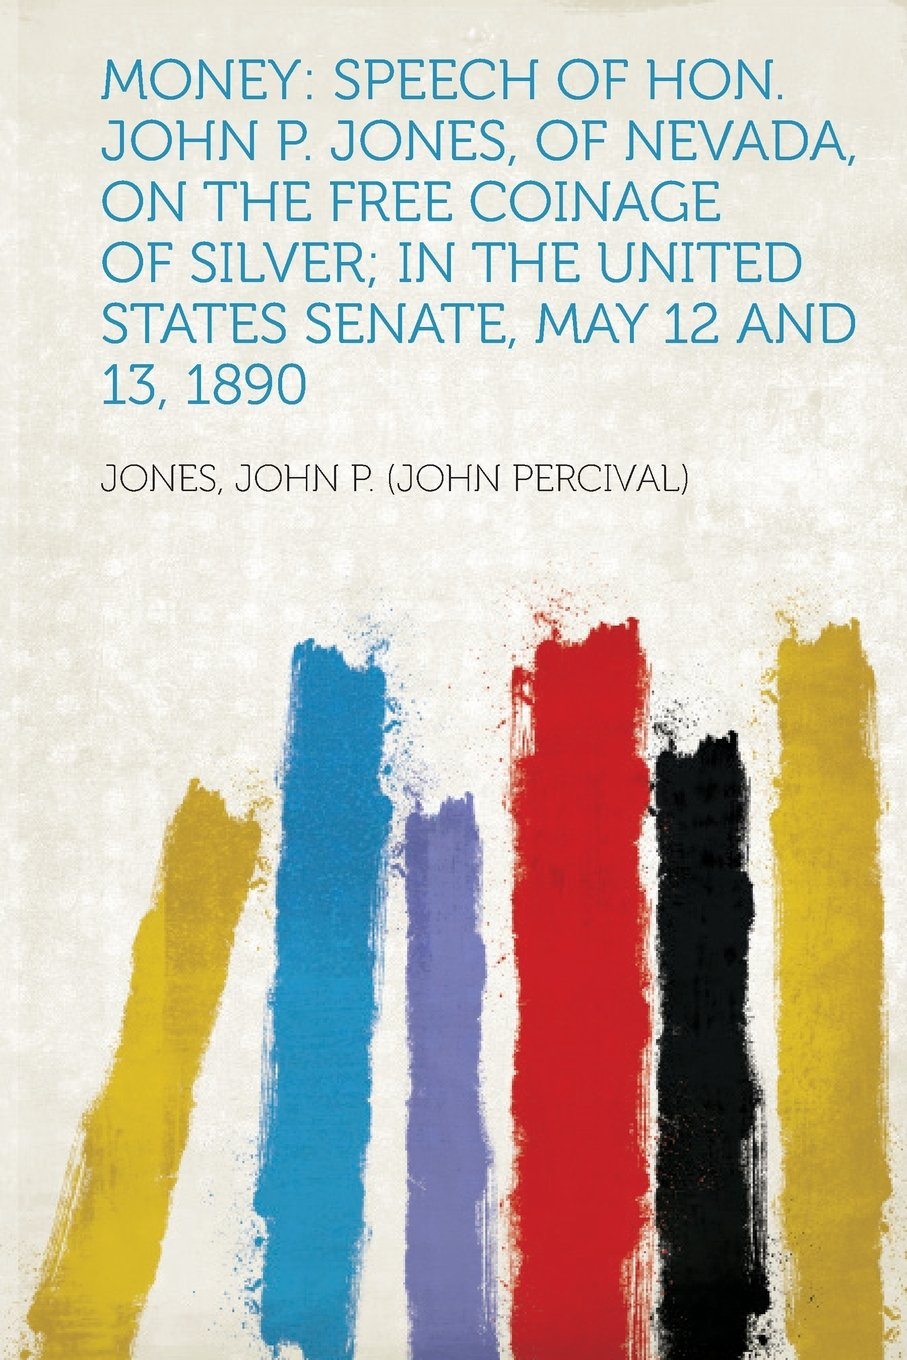 Download Money: Speech of Hon. John P. Jones, of Nevada, On the Free Coinage of Silver; in the United States Senate, May 12 and 13, 1890 PDF